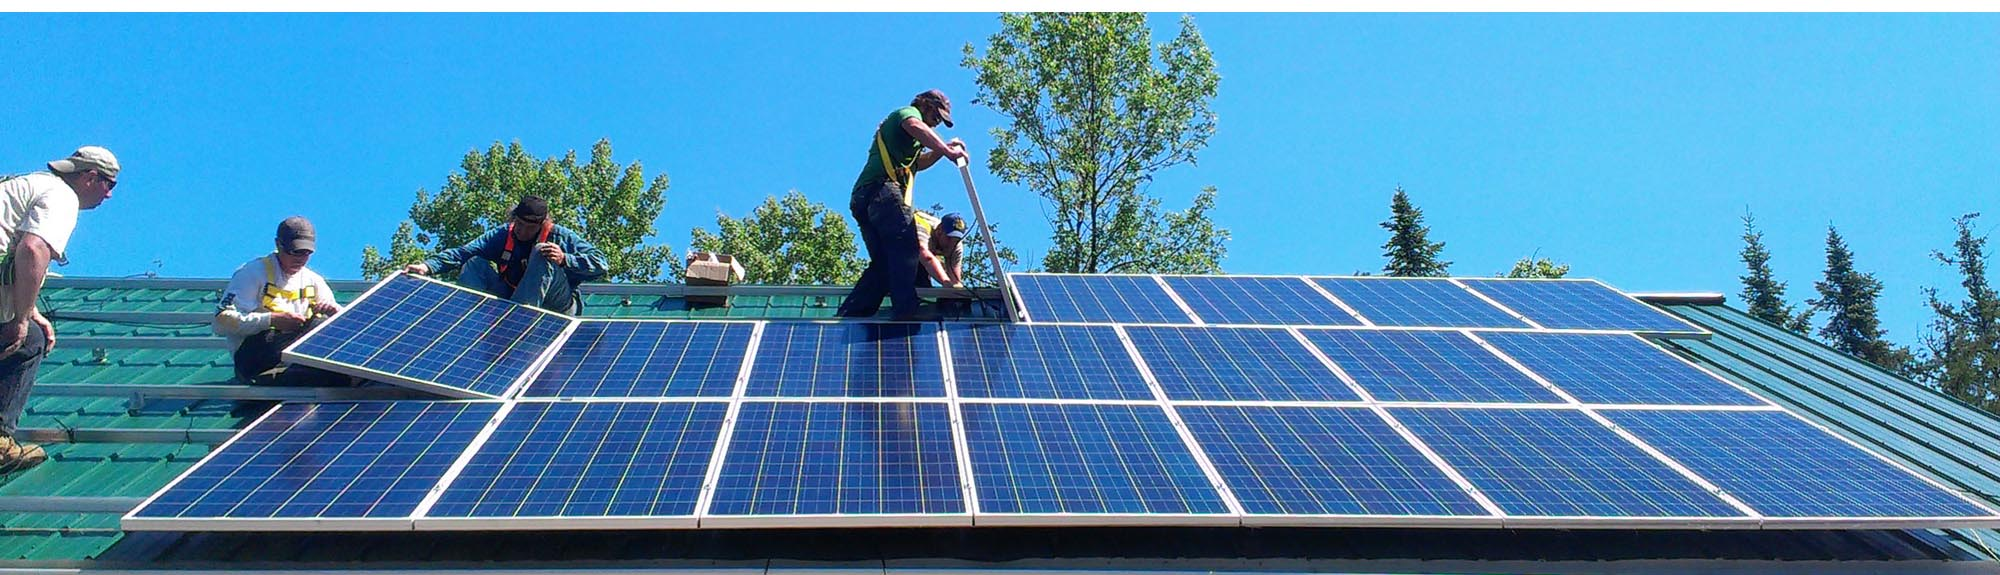 enviro energy welcome to enviro energy sudbury solar fit solutions in northern ontario